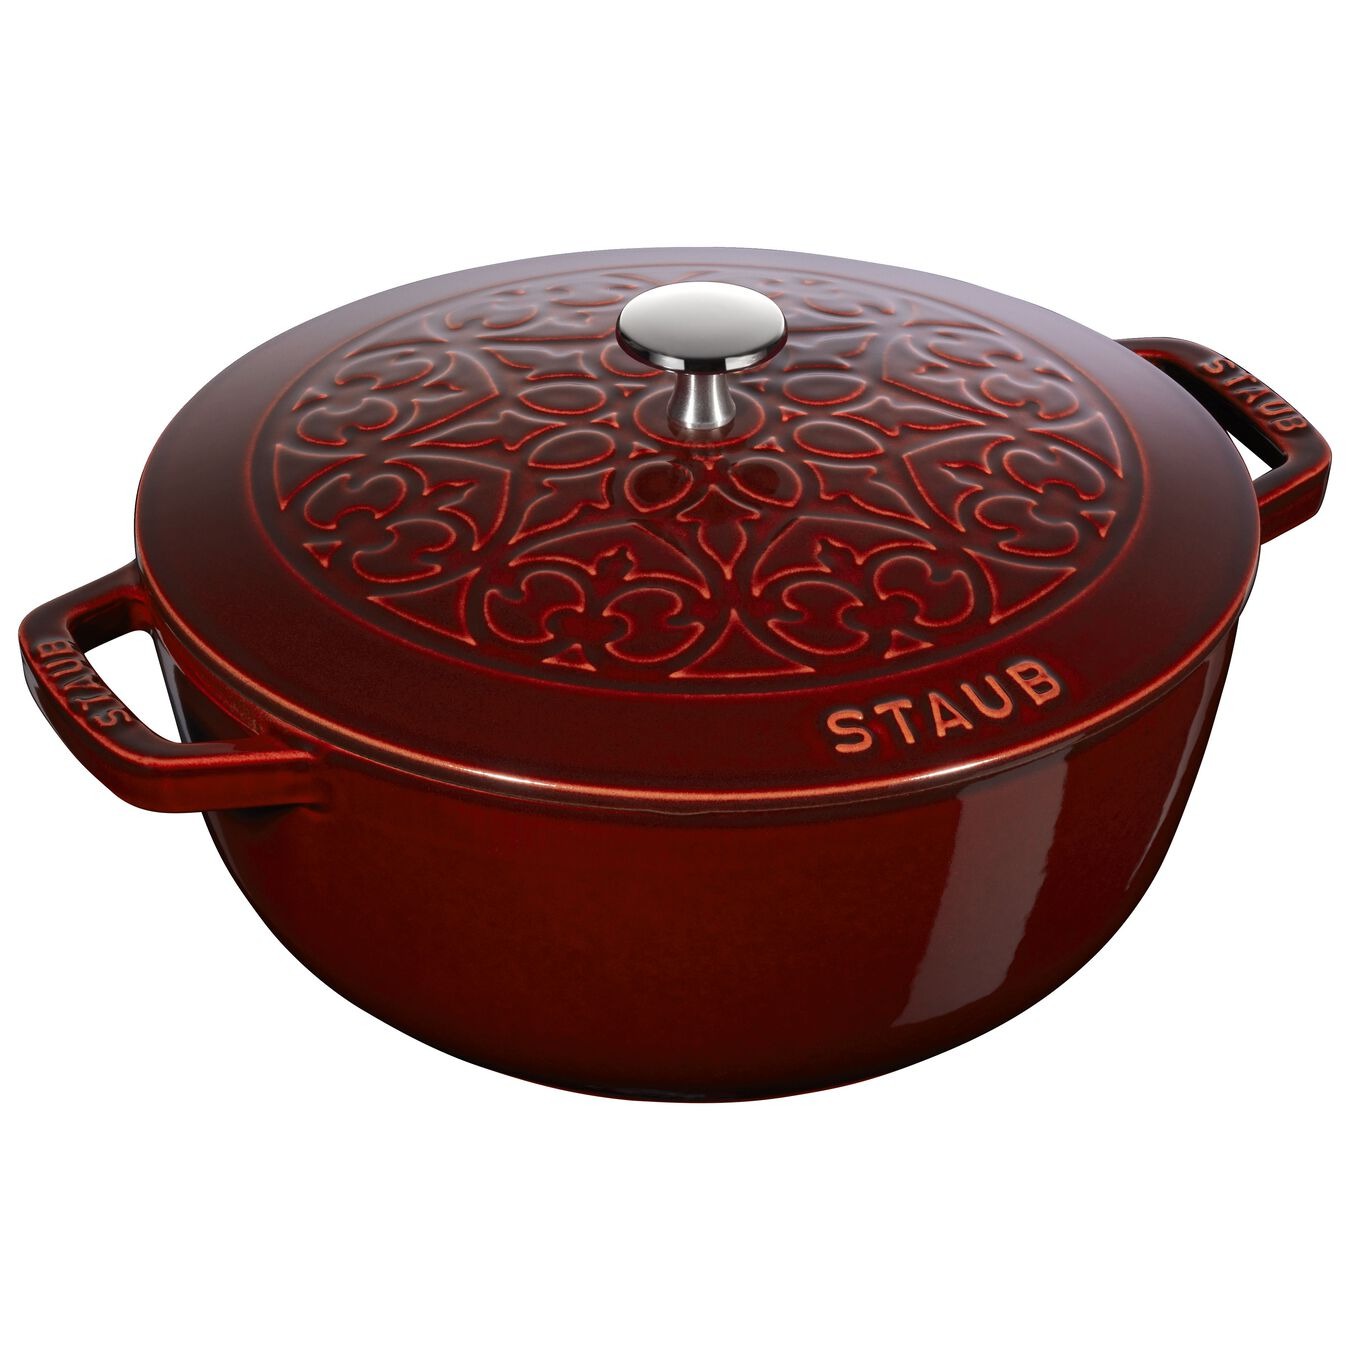 Pot set, lily decal, 2 Piece   round   cast iron   grenadine-red,,large 2